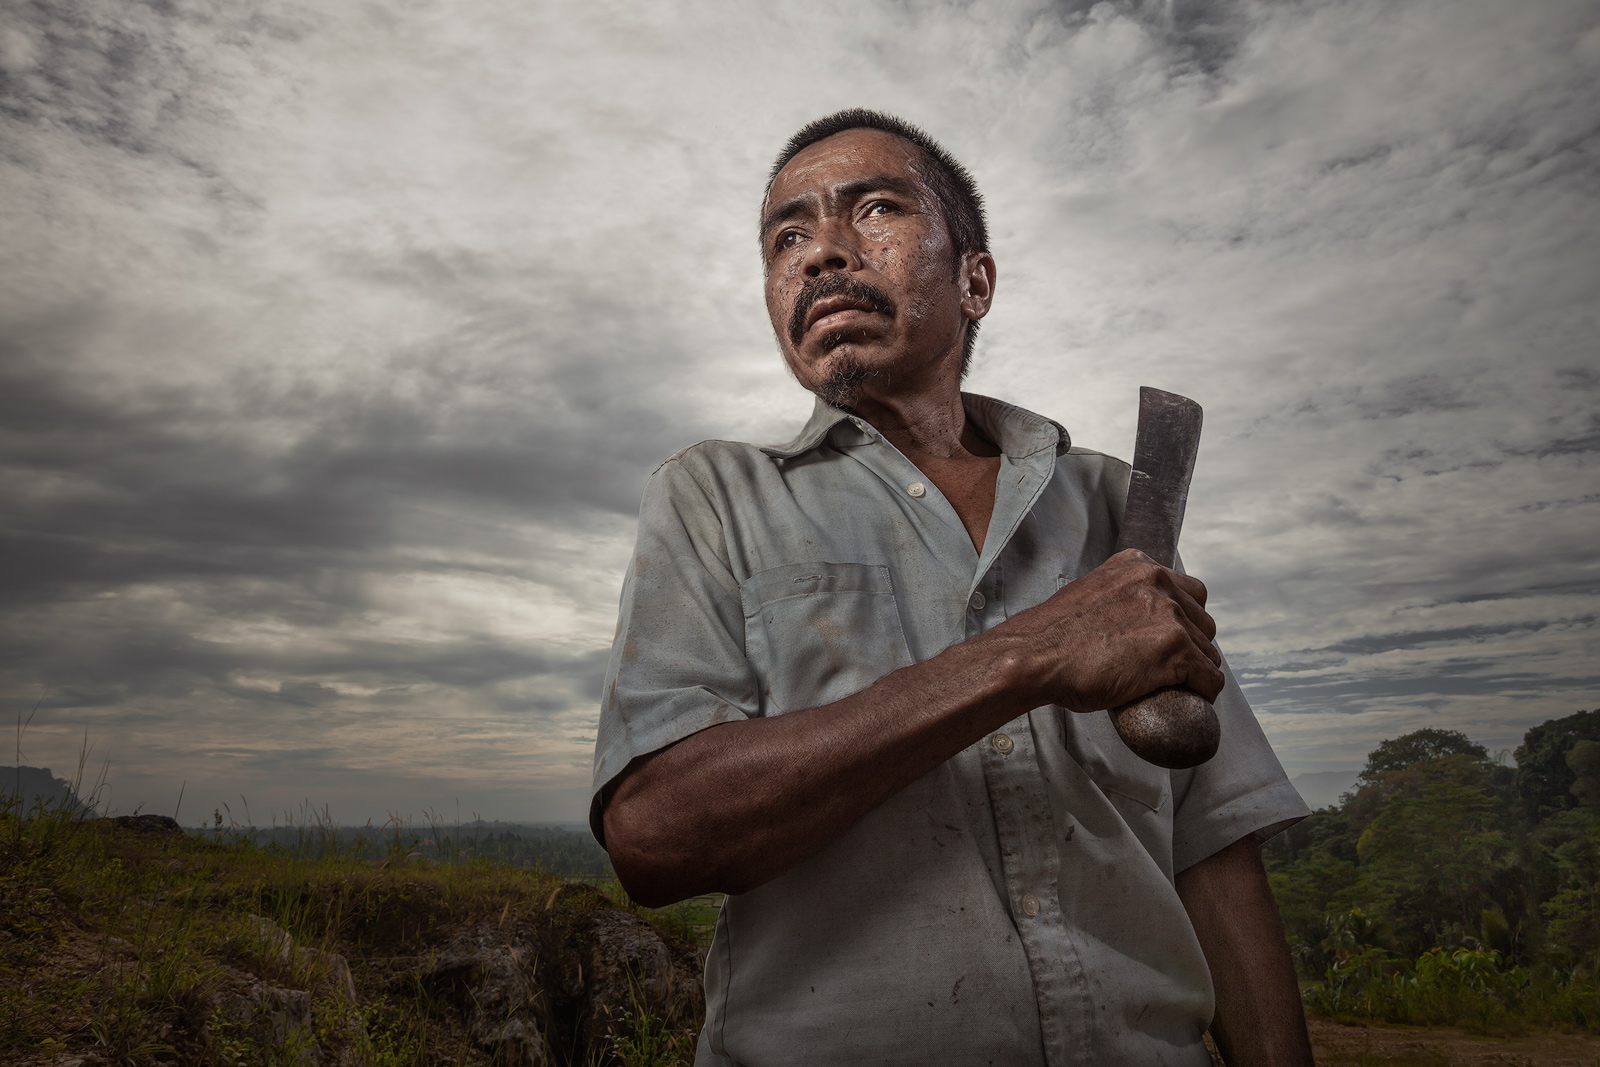 asia,asian,environmental portait,indonesia,indonesian,jakarta,java,knife,machete,male,man,portrait,rumpin,west java, photo